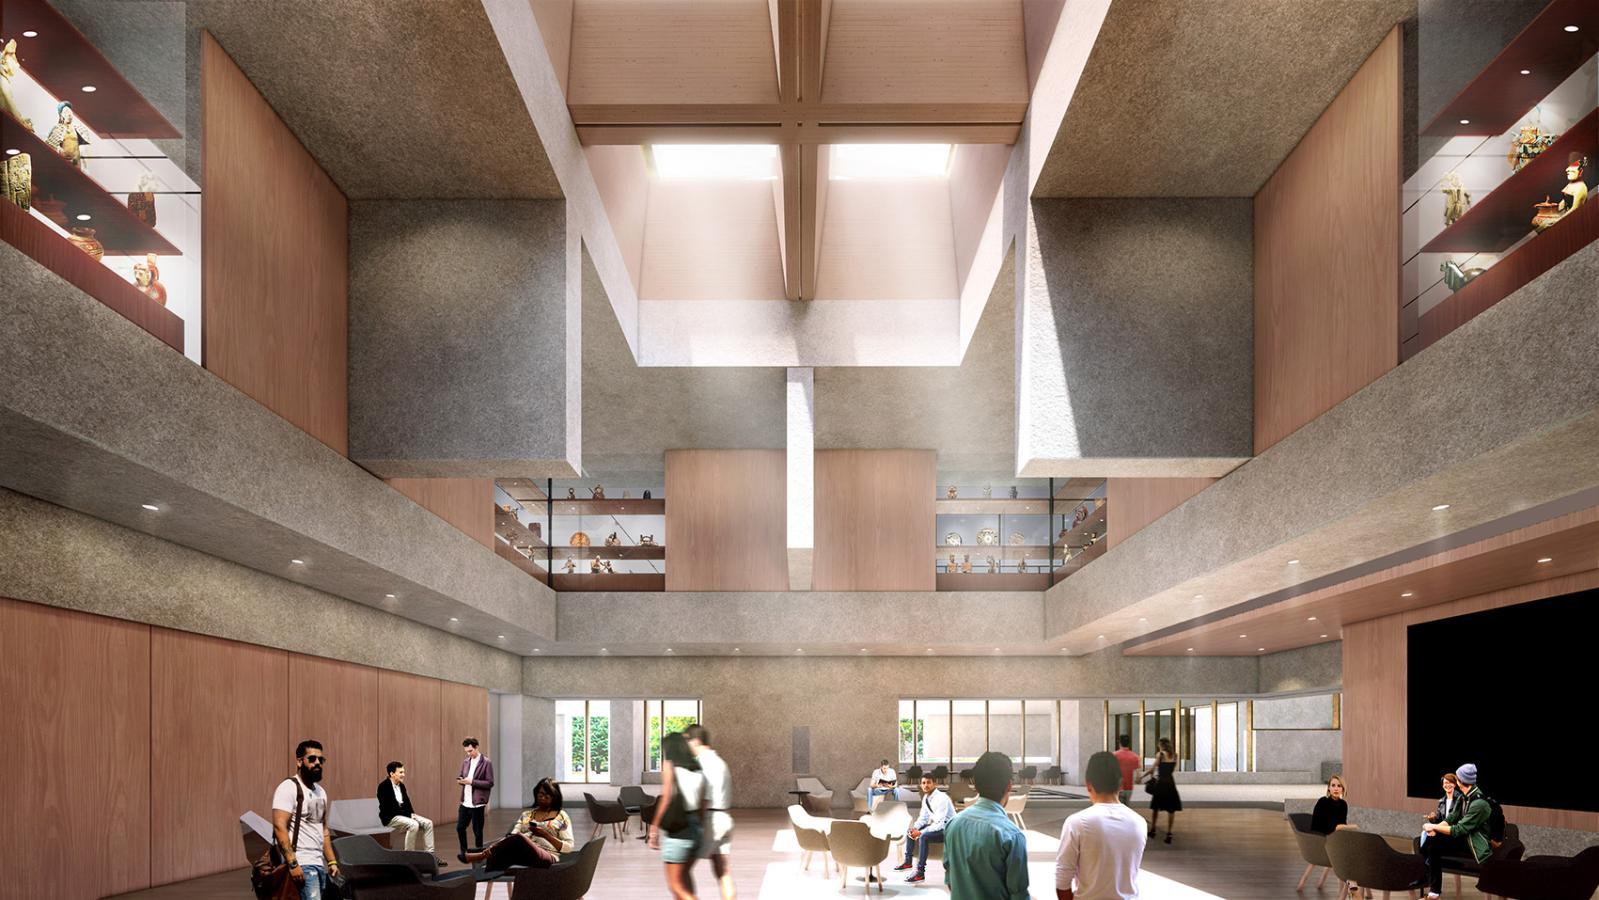 The double-height Grand Hall sits at the heart of the Museum complex and will function as a lecture hall and performance space and will ho